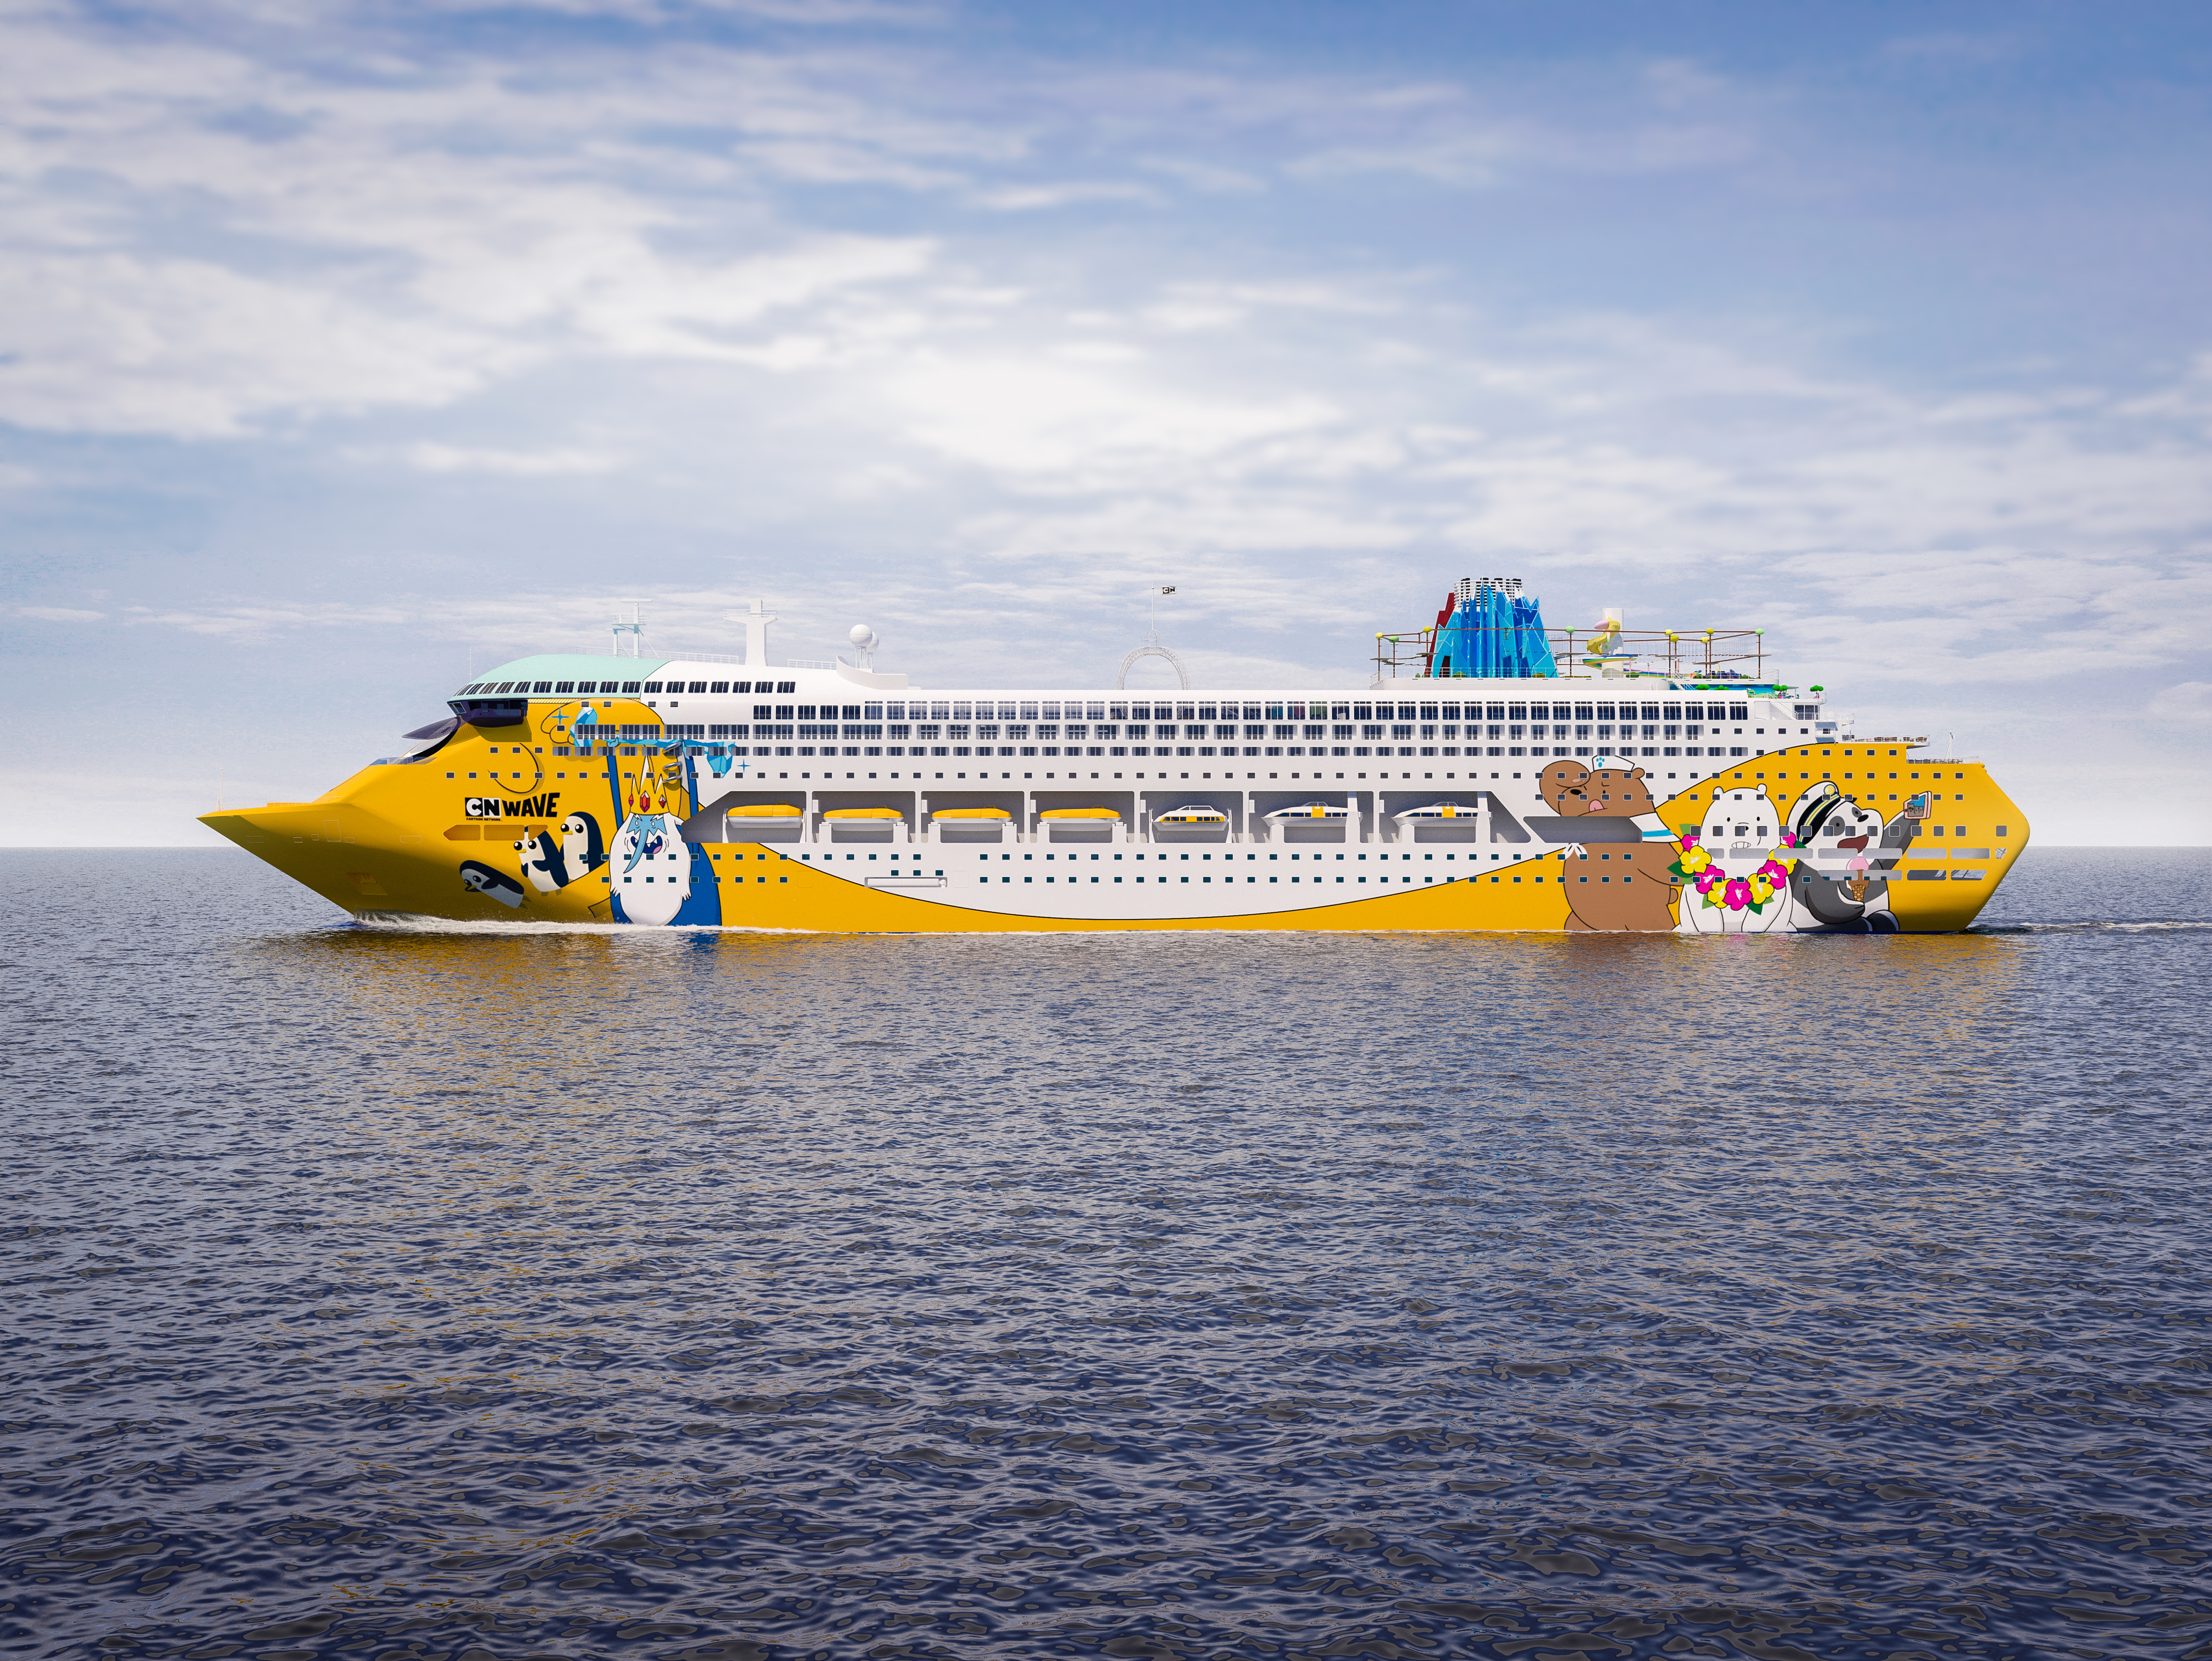 Cartoon Network reveals colorful new cruise ship | CNN Travel